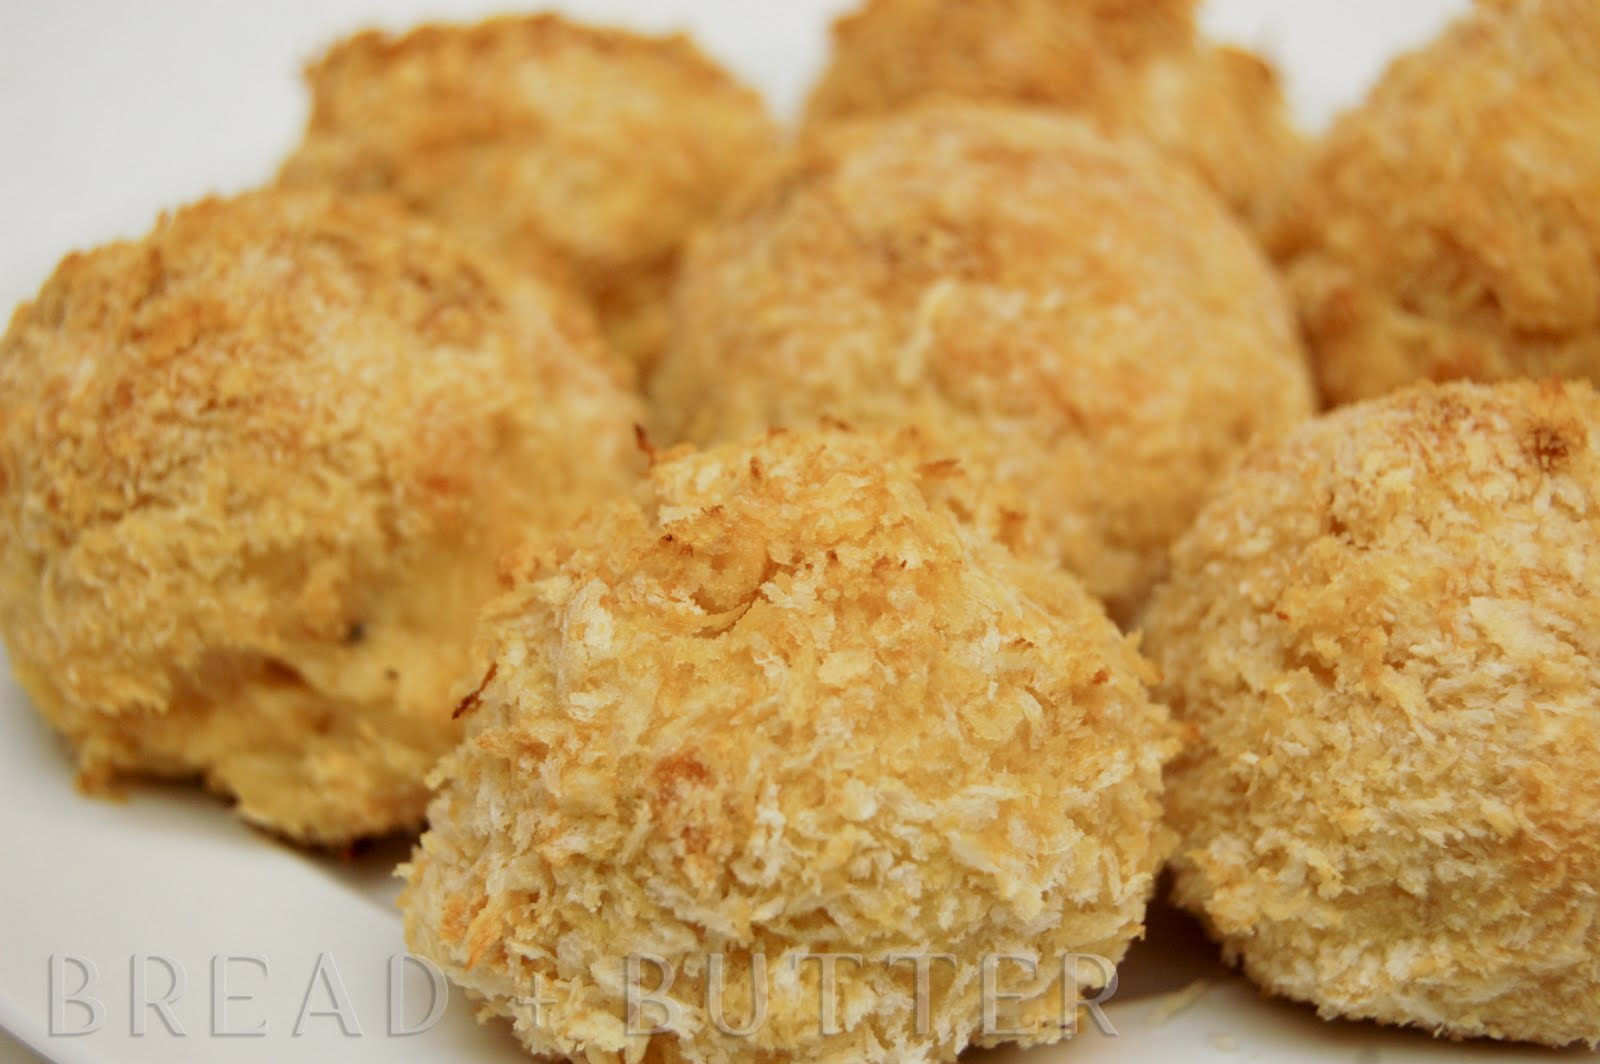 Cheesy+Baked+Mac+And+Cheese Bread + Butter: Baked Mac and Cheese Balls